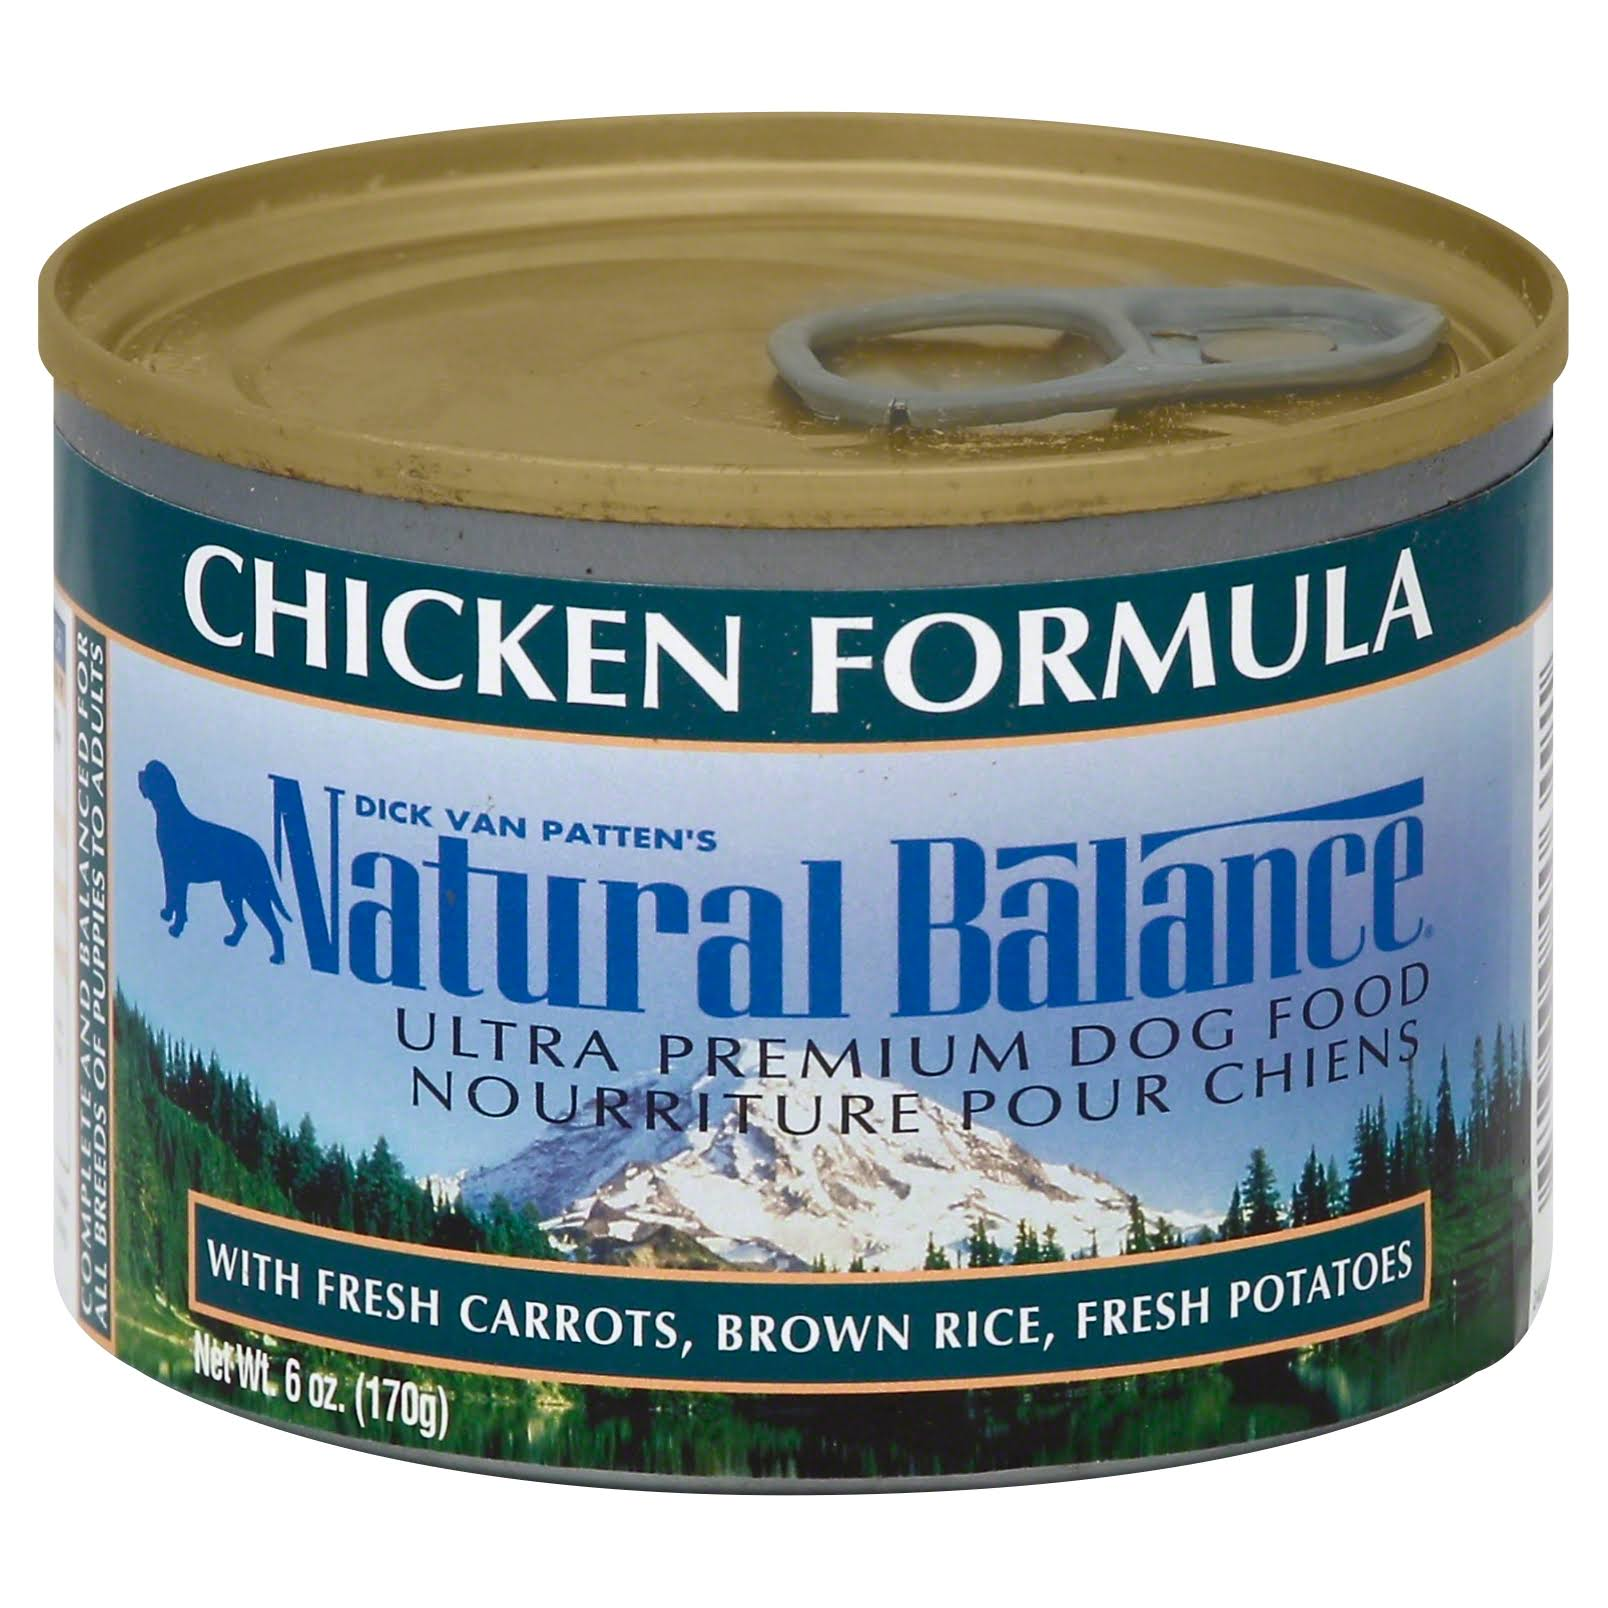 Natural Balance Ultra Premium Dog Food - Chicken, 170g